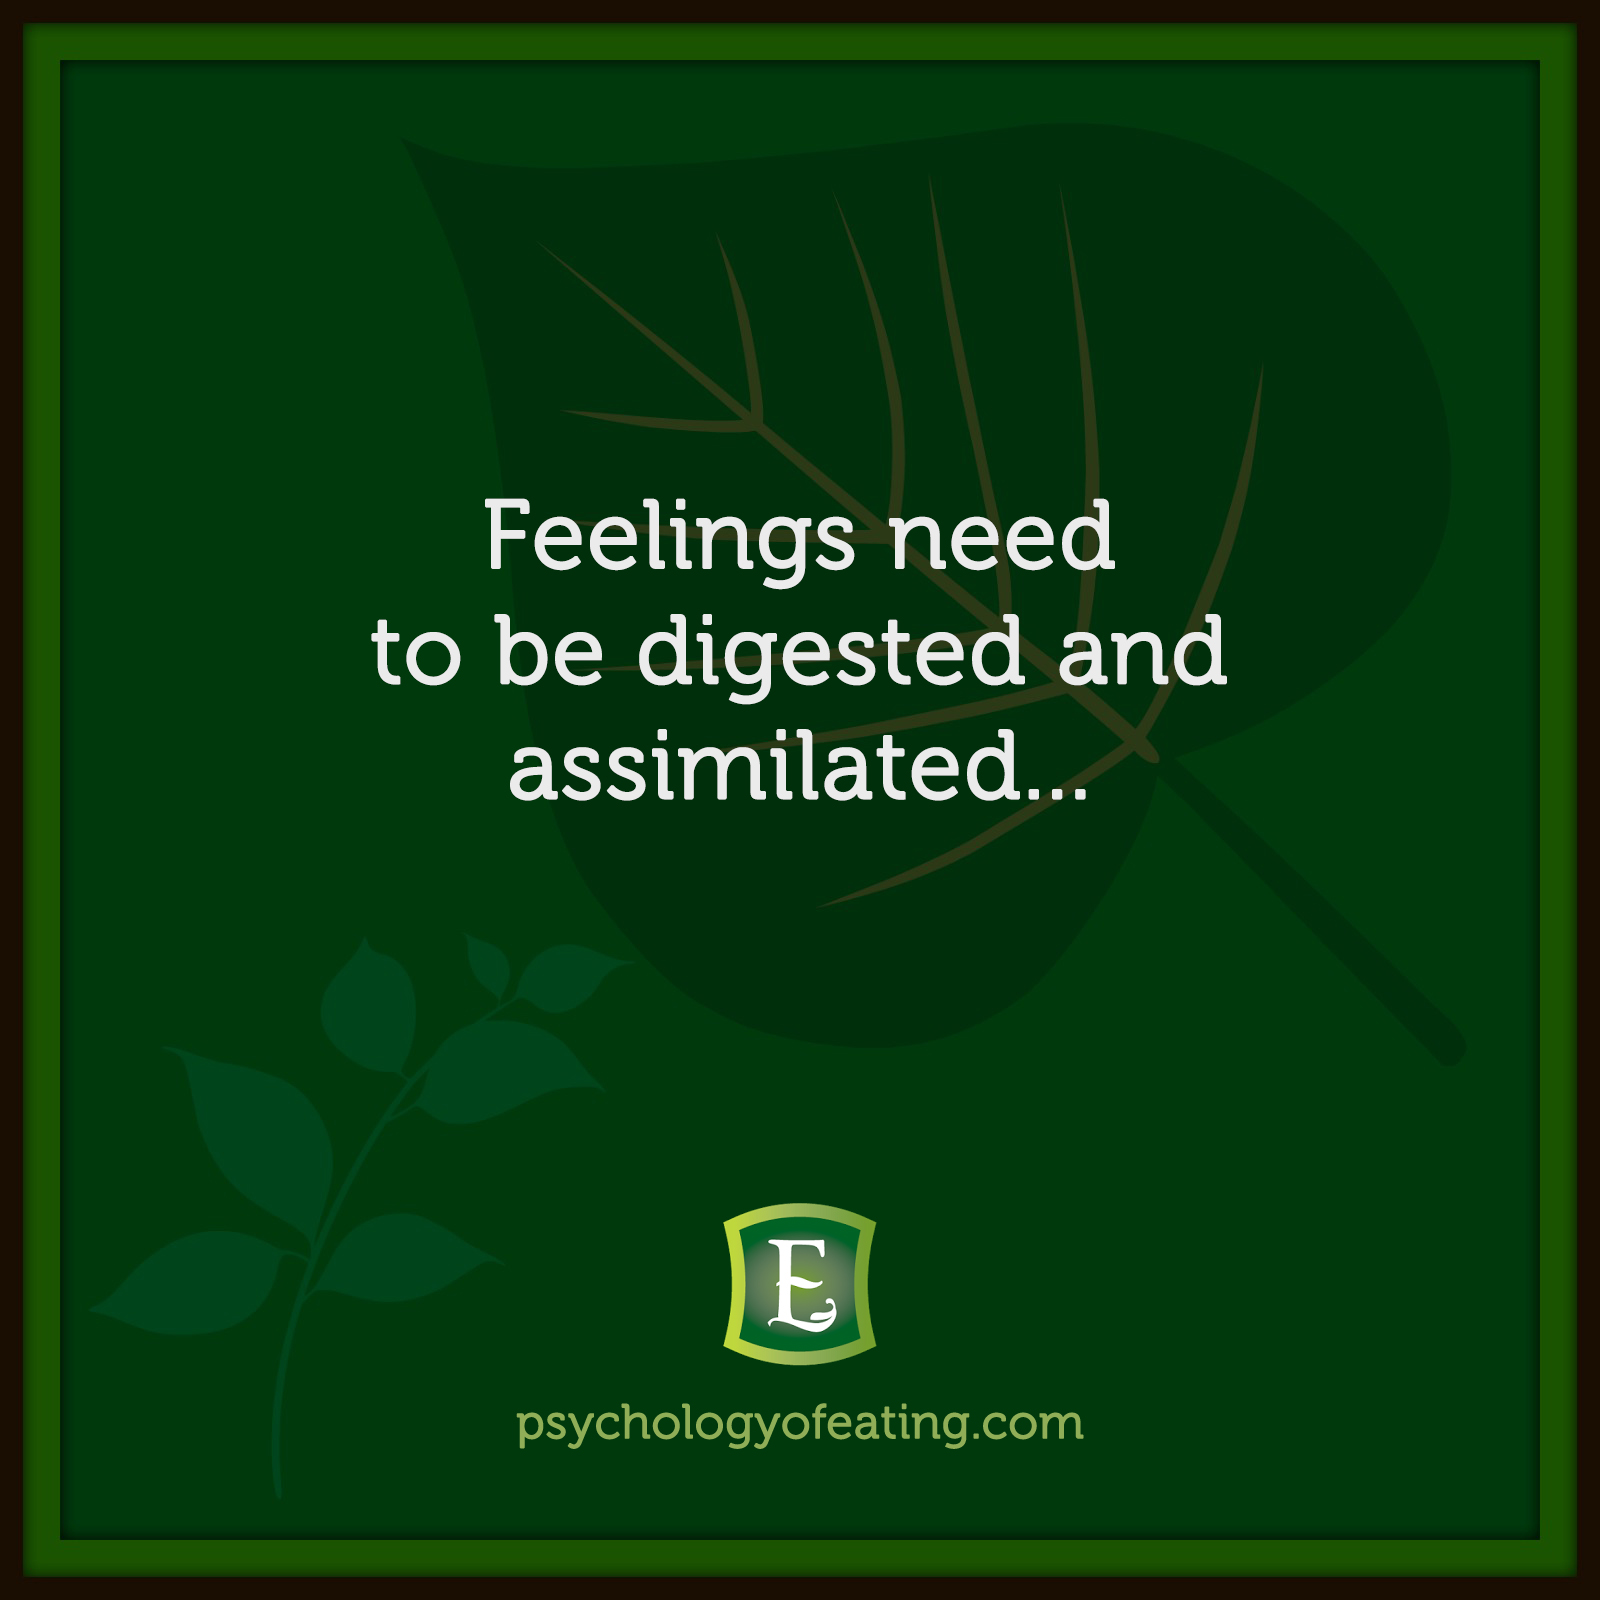 Feelings need to be digested and assimilated… #health #nutrition #eatingpsychology #IPE